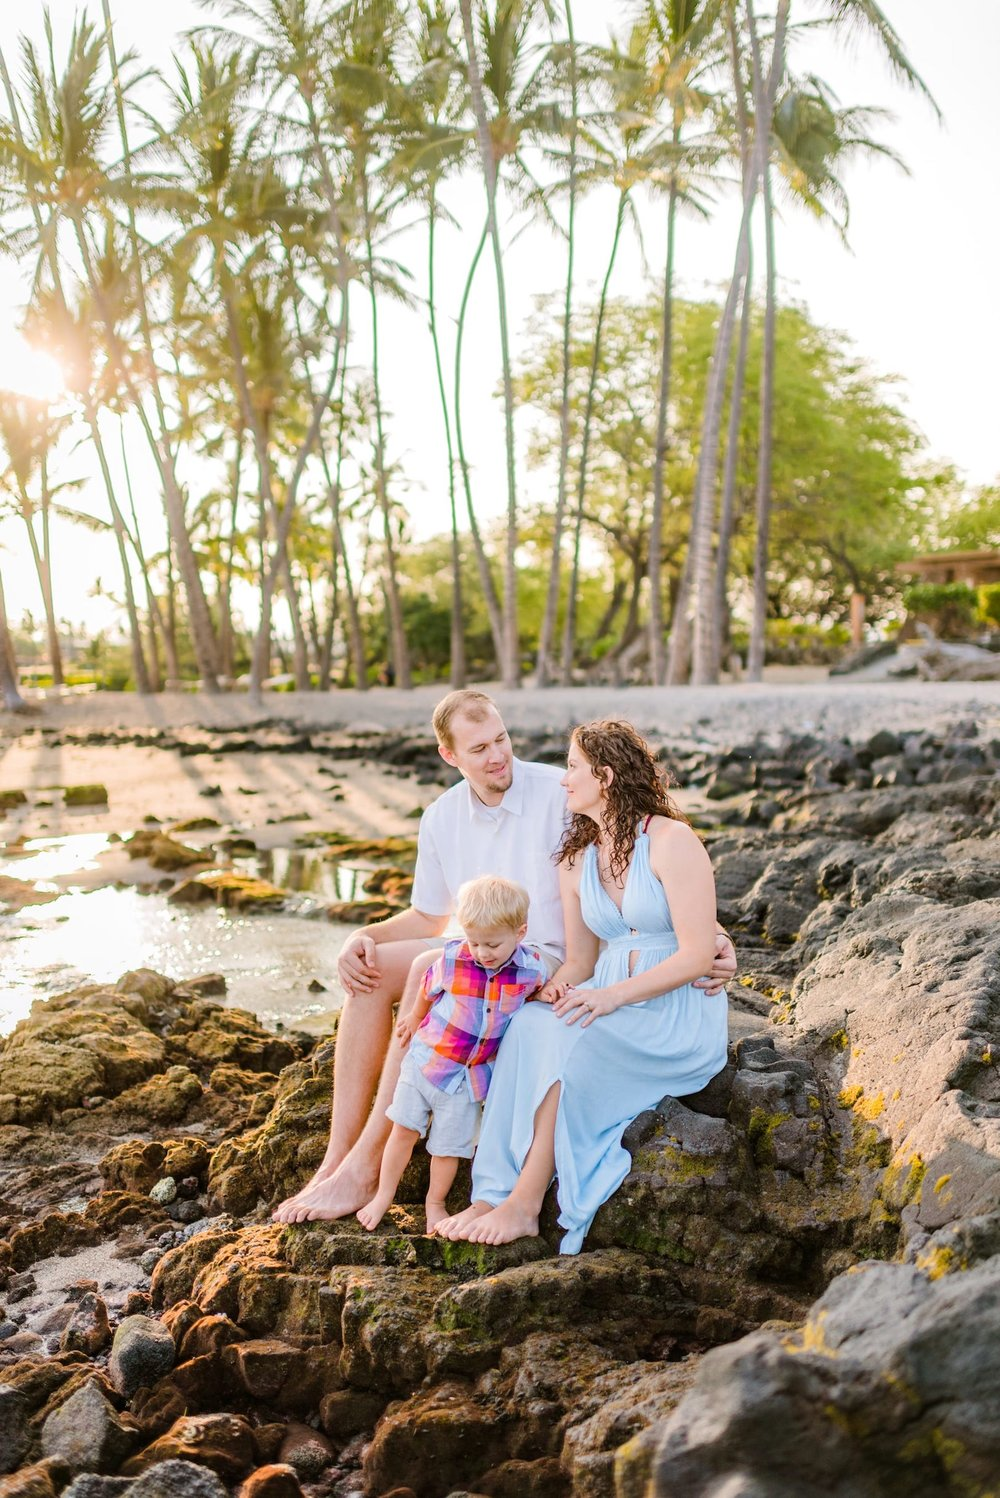 Sunrise-Hawaii-Vacation-Family-Photographer-48.jpg